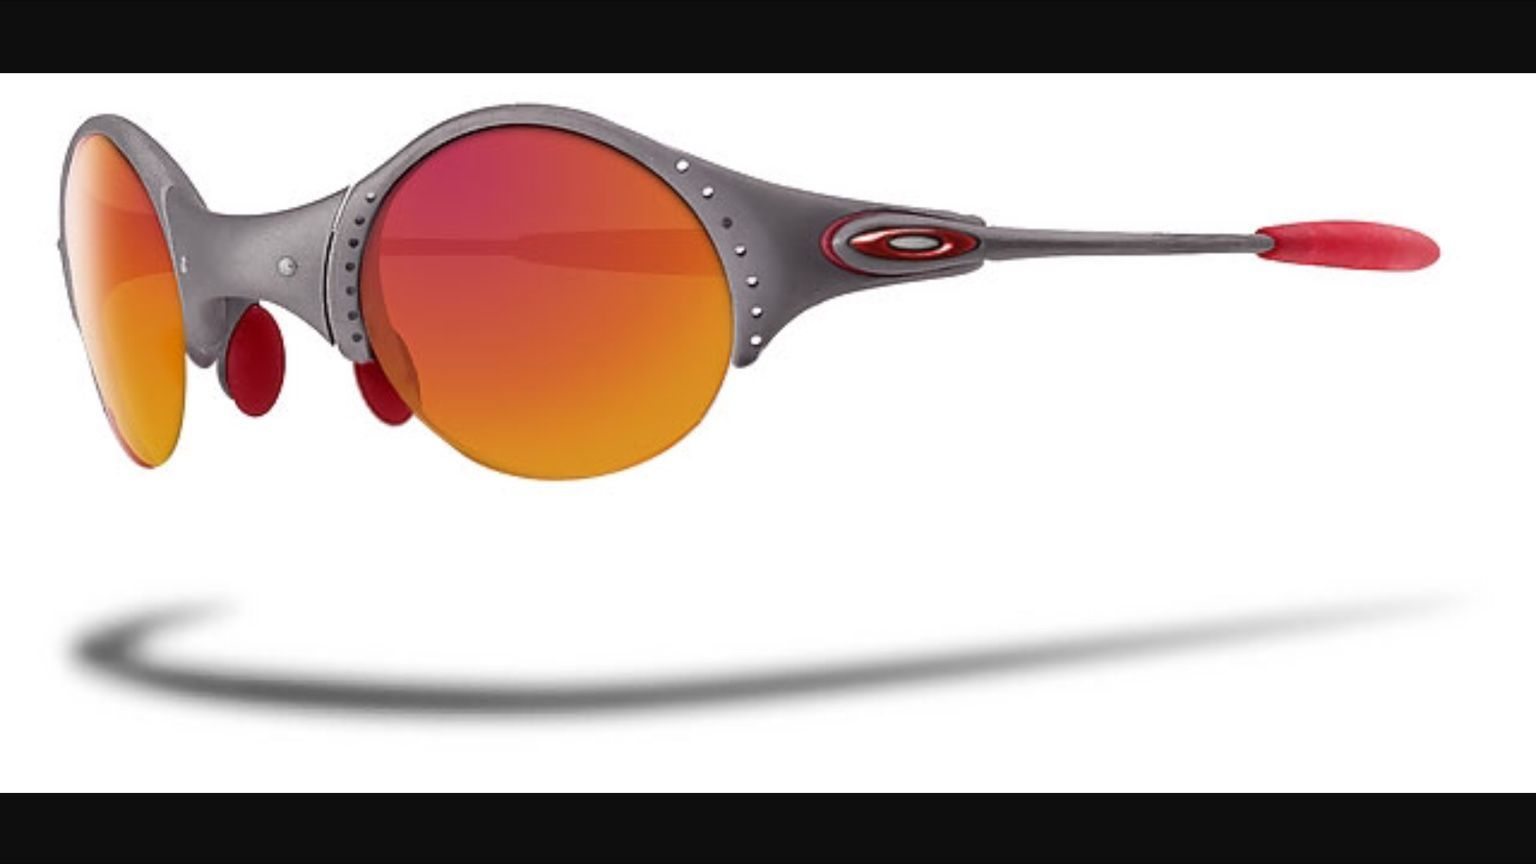 new oakley glasses  New Oakley Juliet / X-Metals?